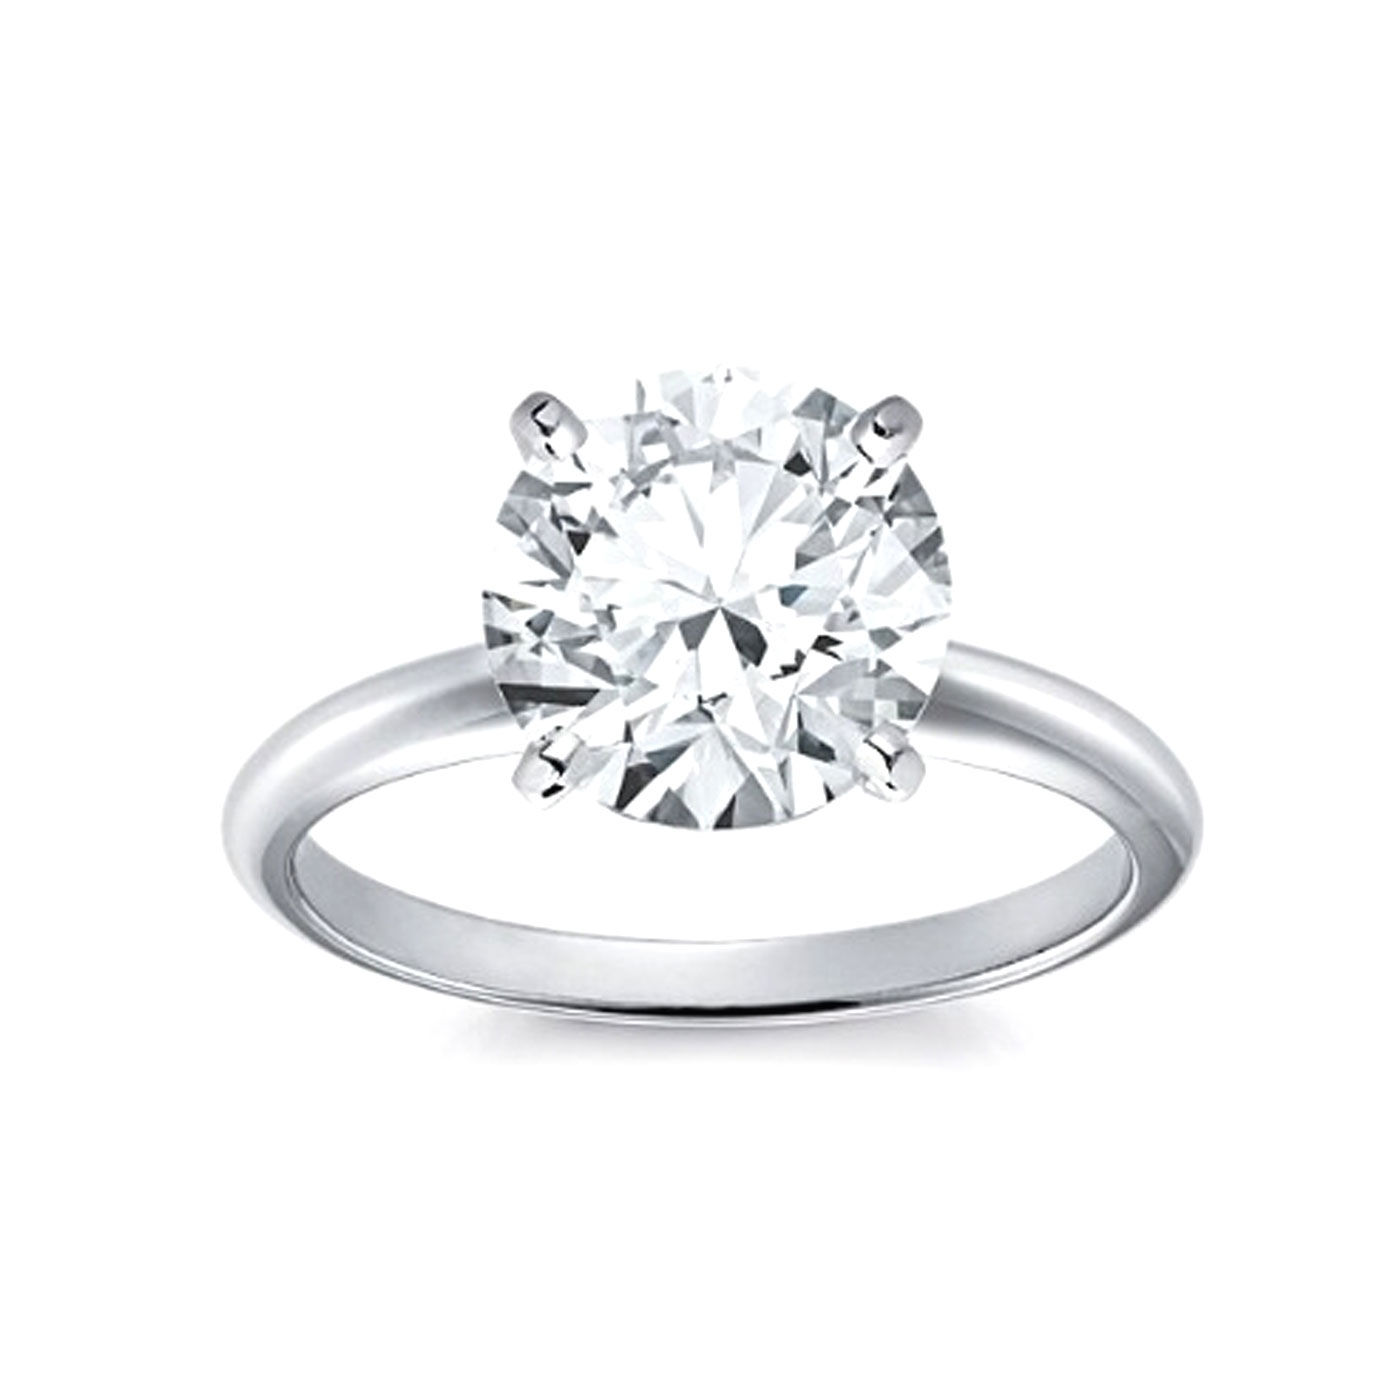 stones a cut with side diamond collections round brilliant classic featuring ring rings baguette graff tapered